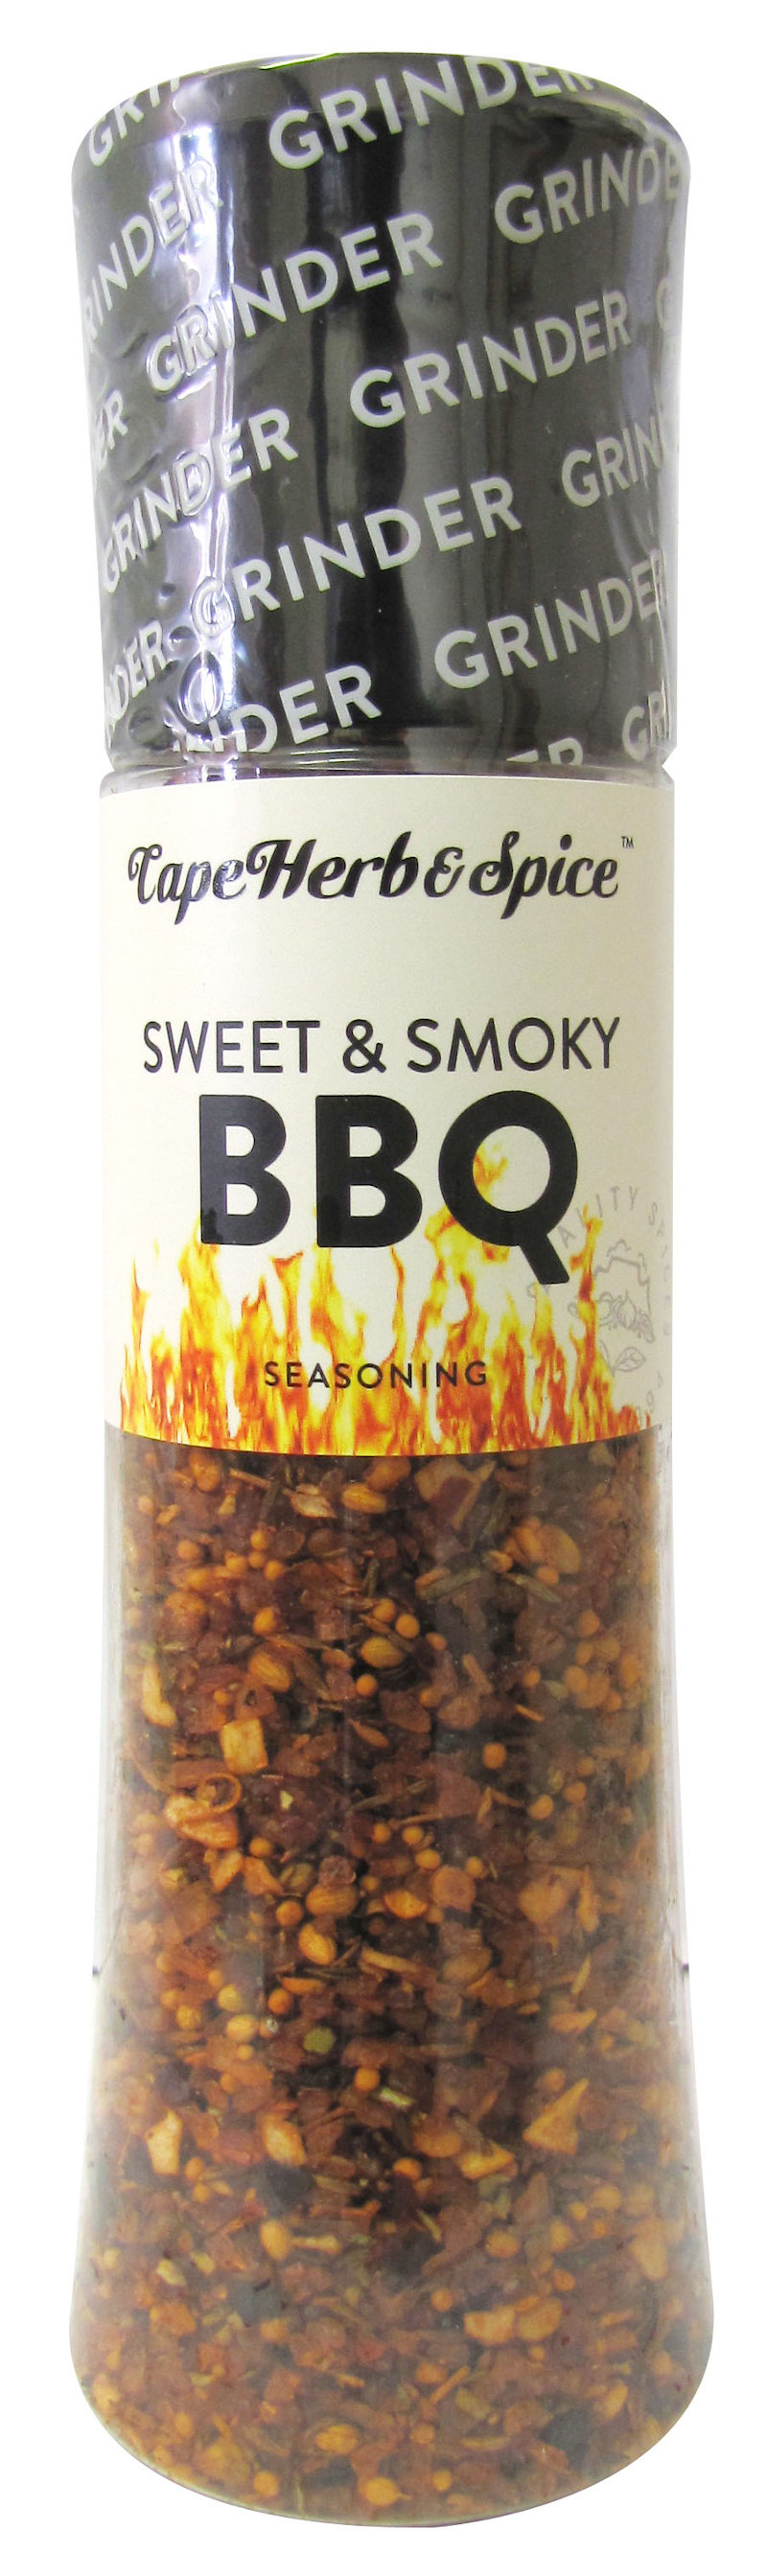 Приправа копчено-сладкая Cape Herb & Spice Sweet & Smoky BBQ